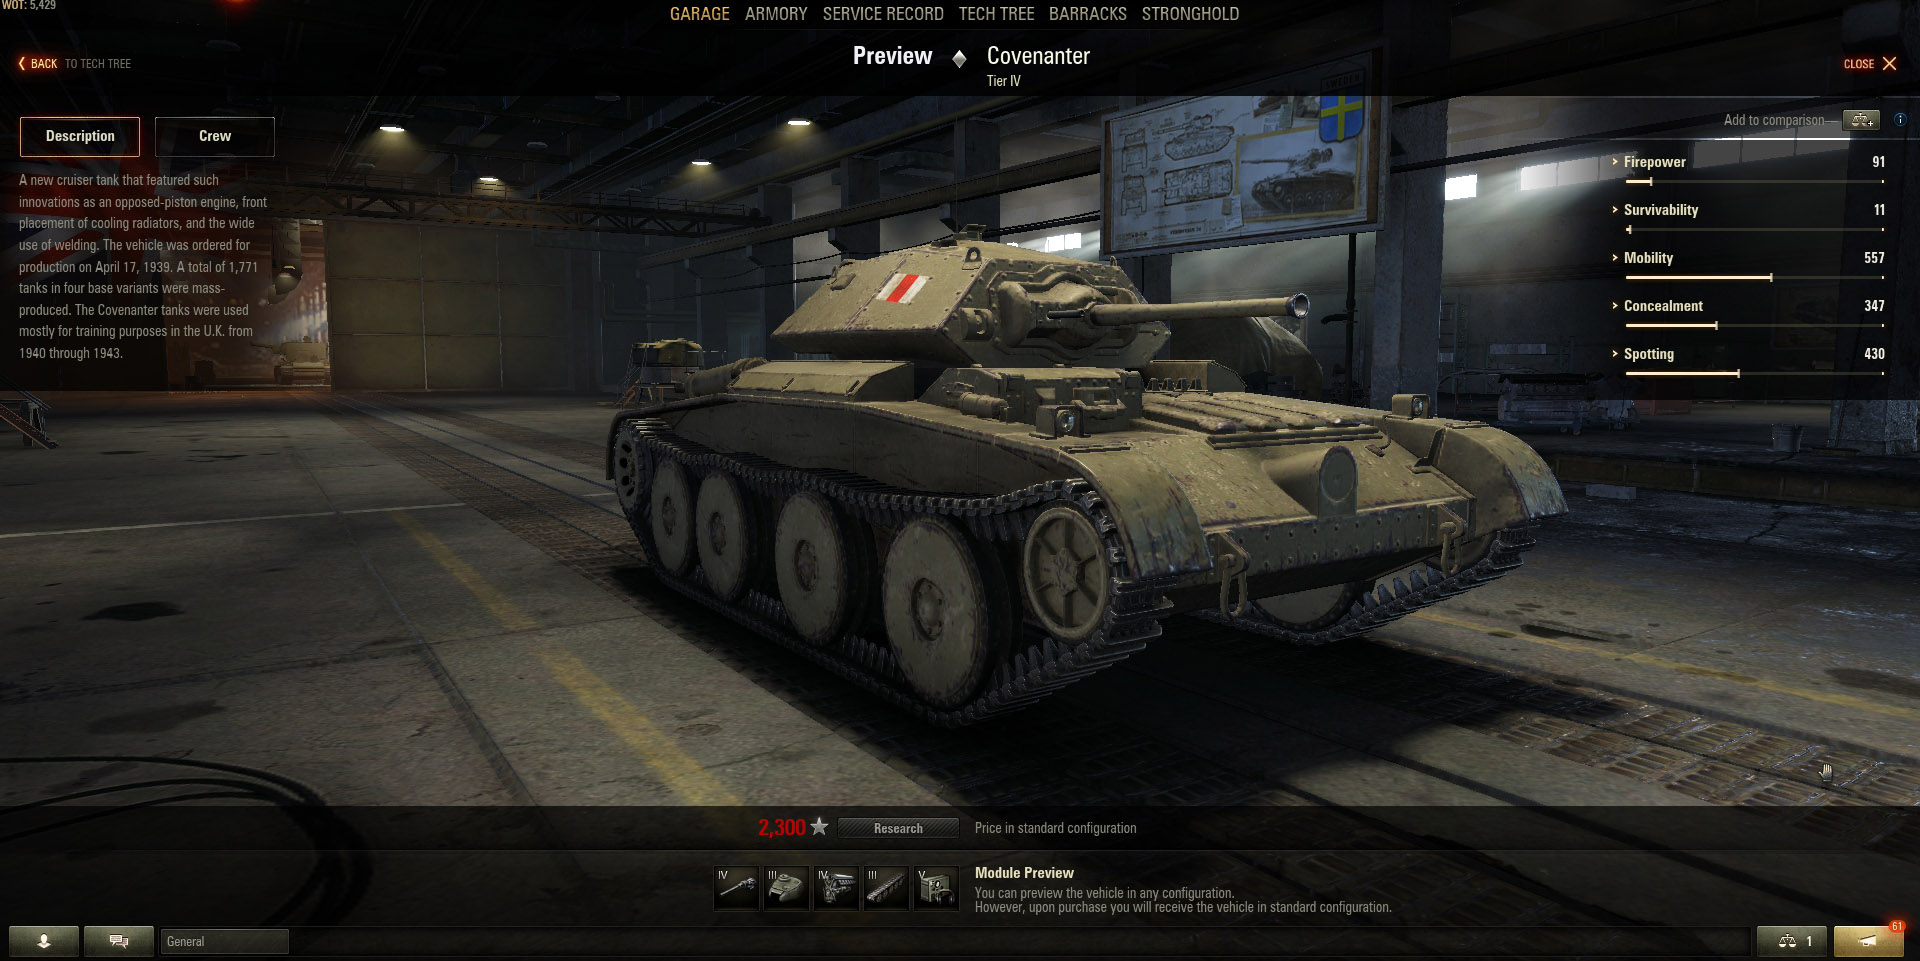 The Covenanter is a British Light tank that excels at flanking and scouting.